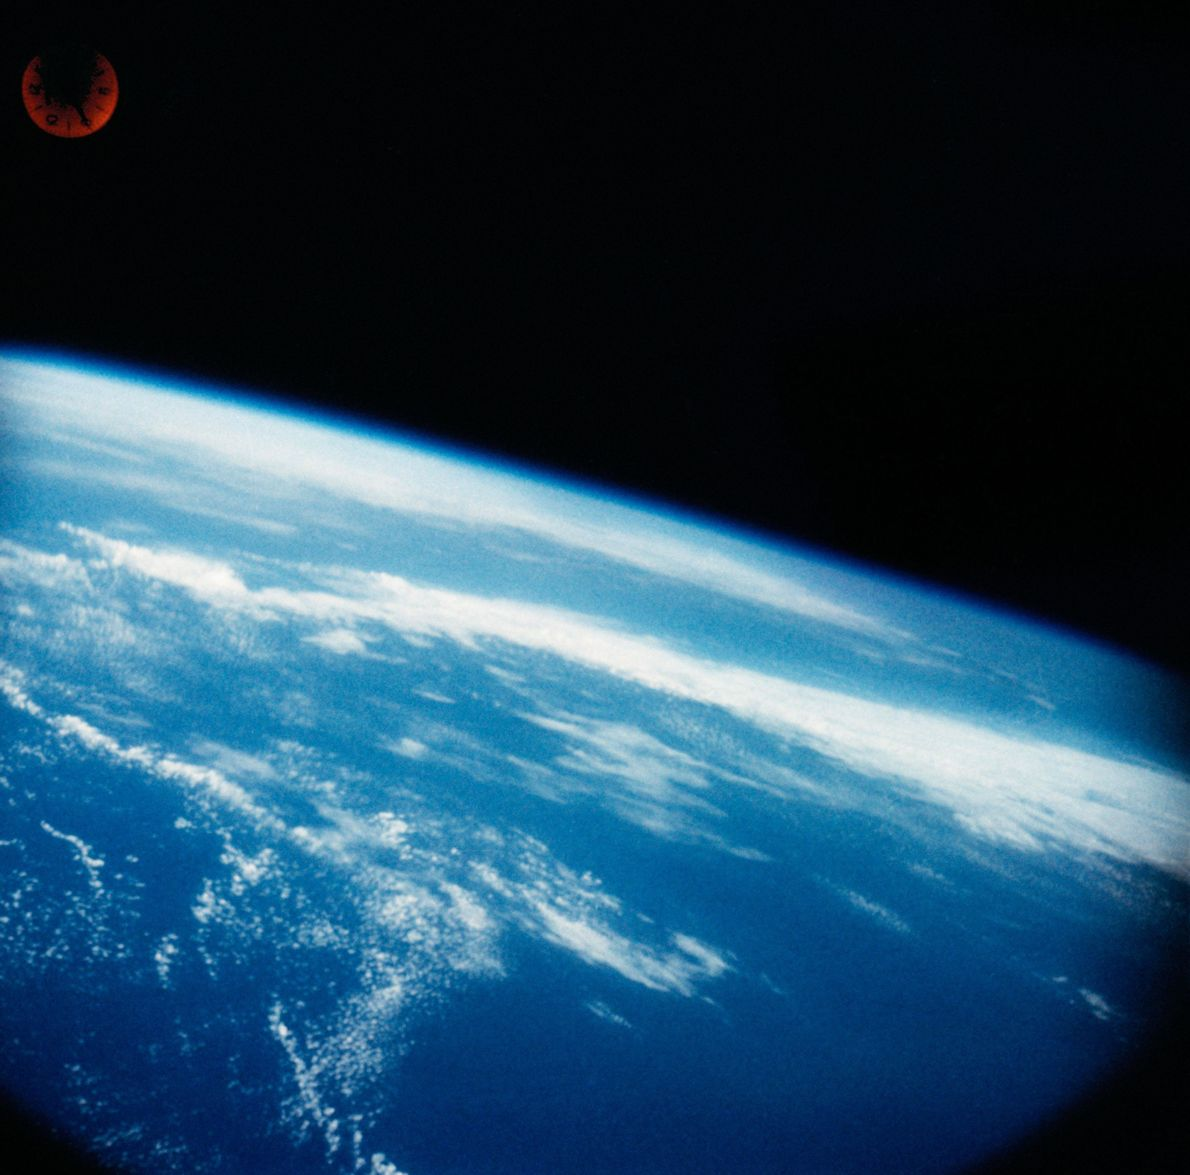 Wally Schirra took a heavily modified Hasselblad camera into space with him. The images of Earth ...